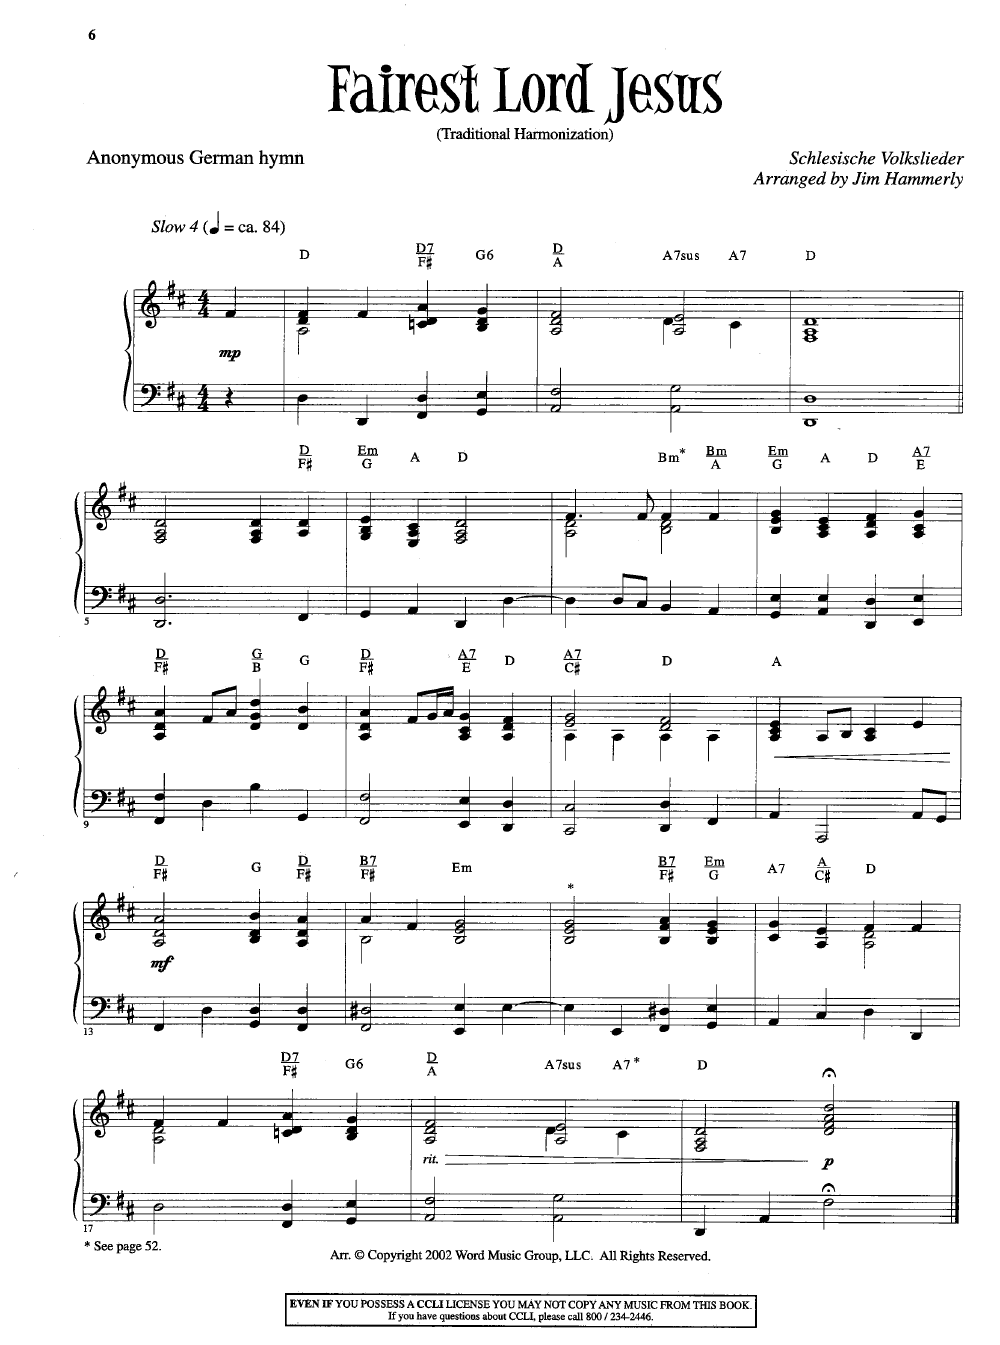 Cool Chords For Church Piano By Variousa Jw Pepper Sheet Music